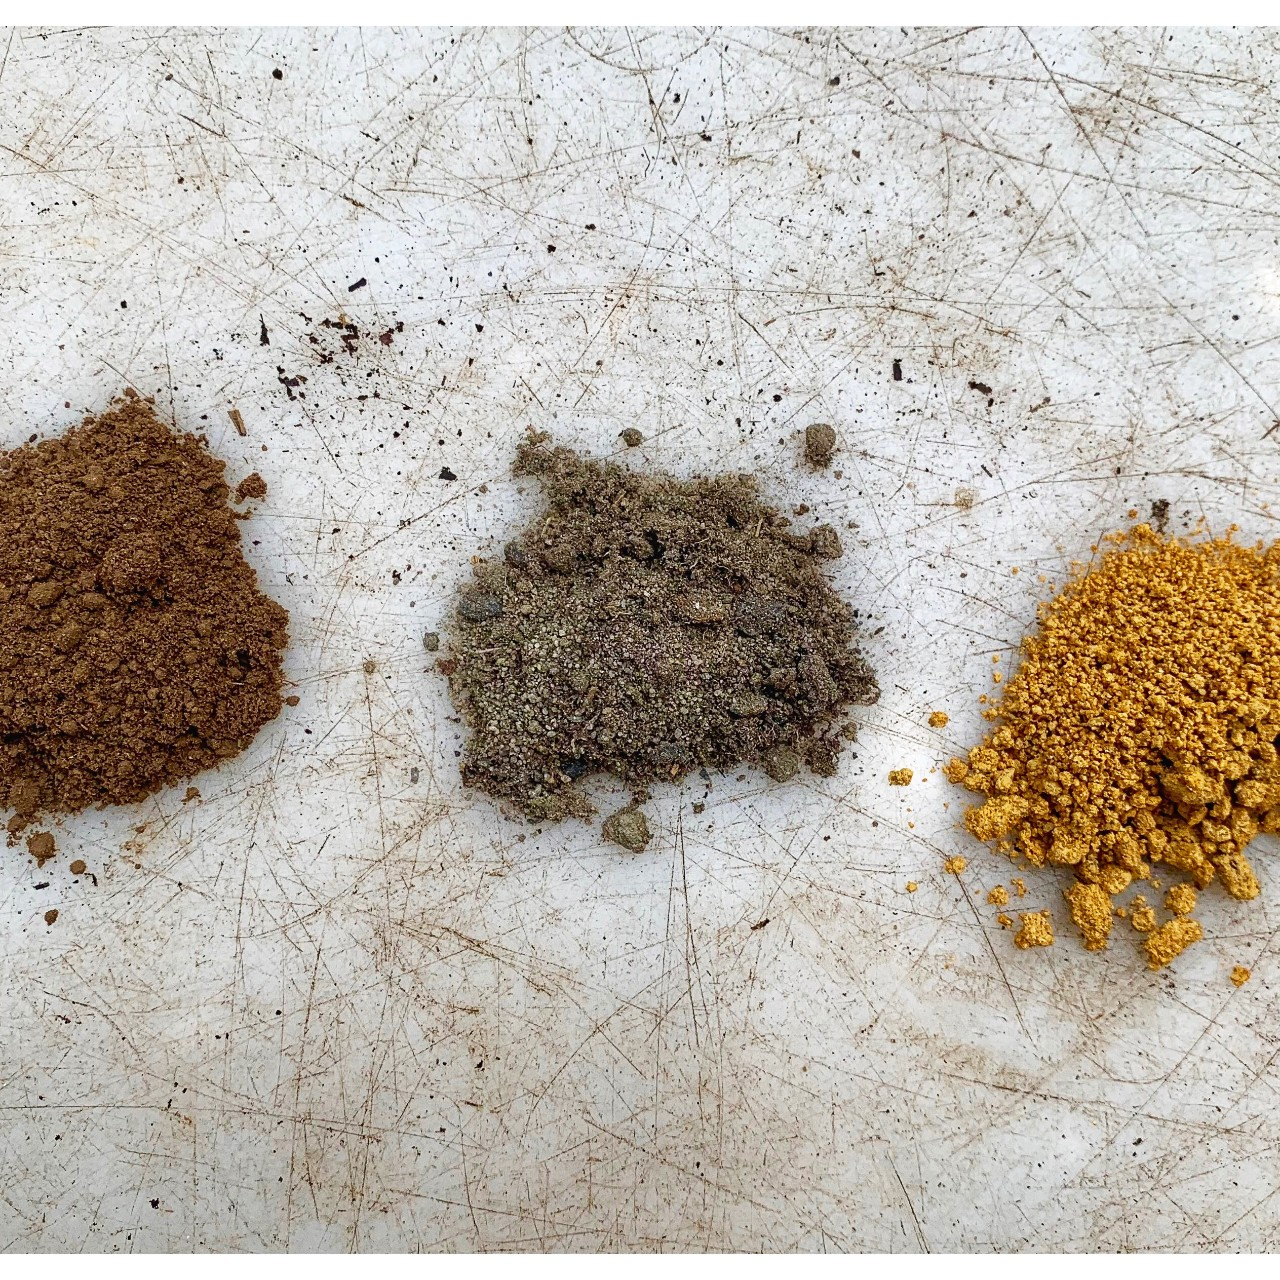 soil samples from the bush